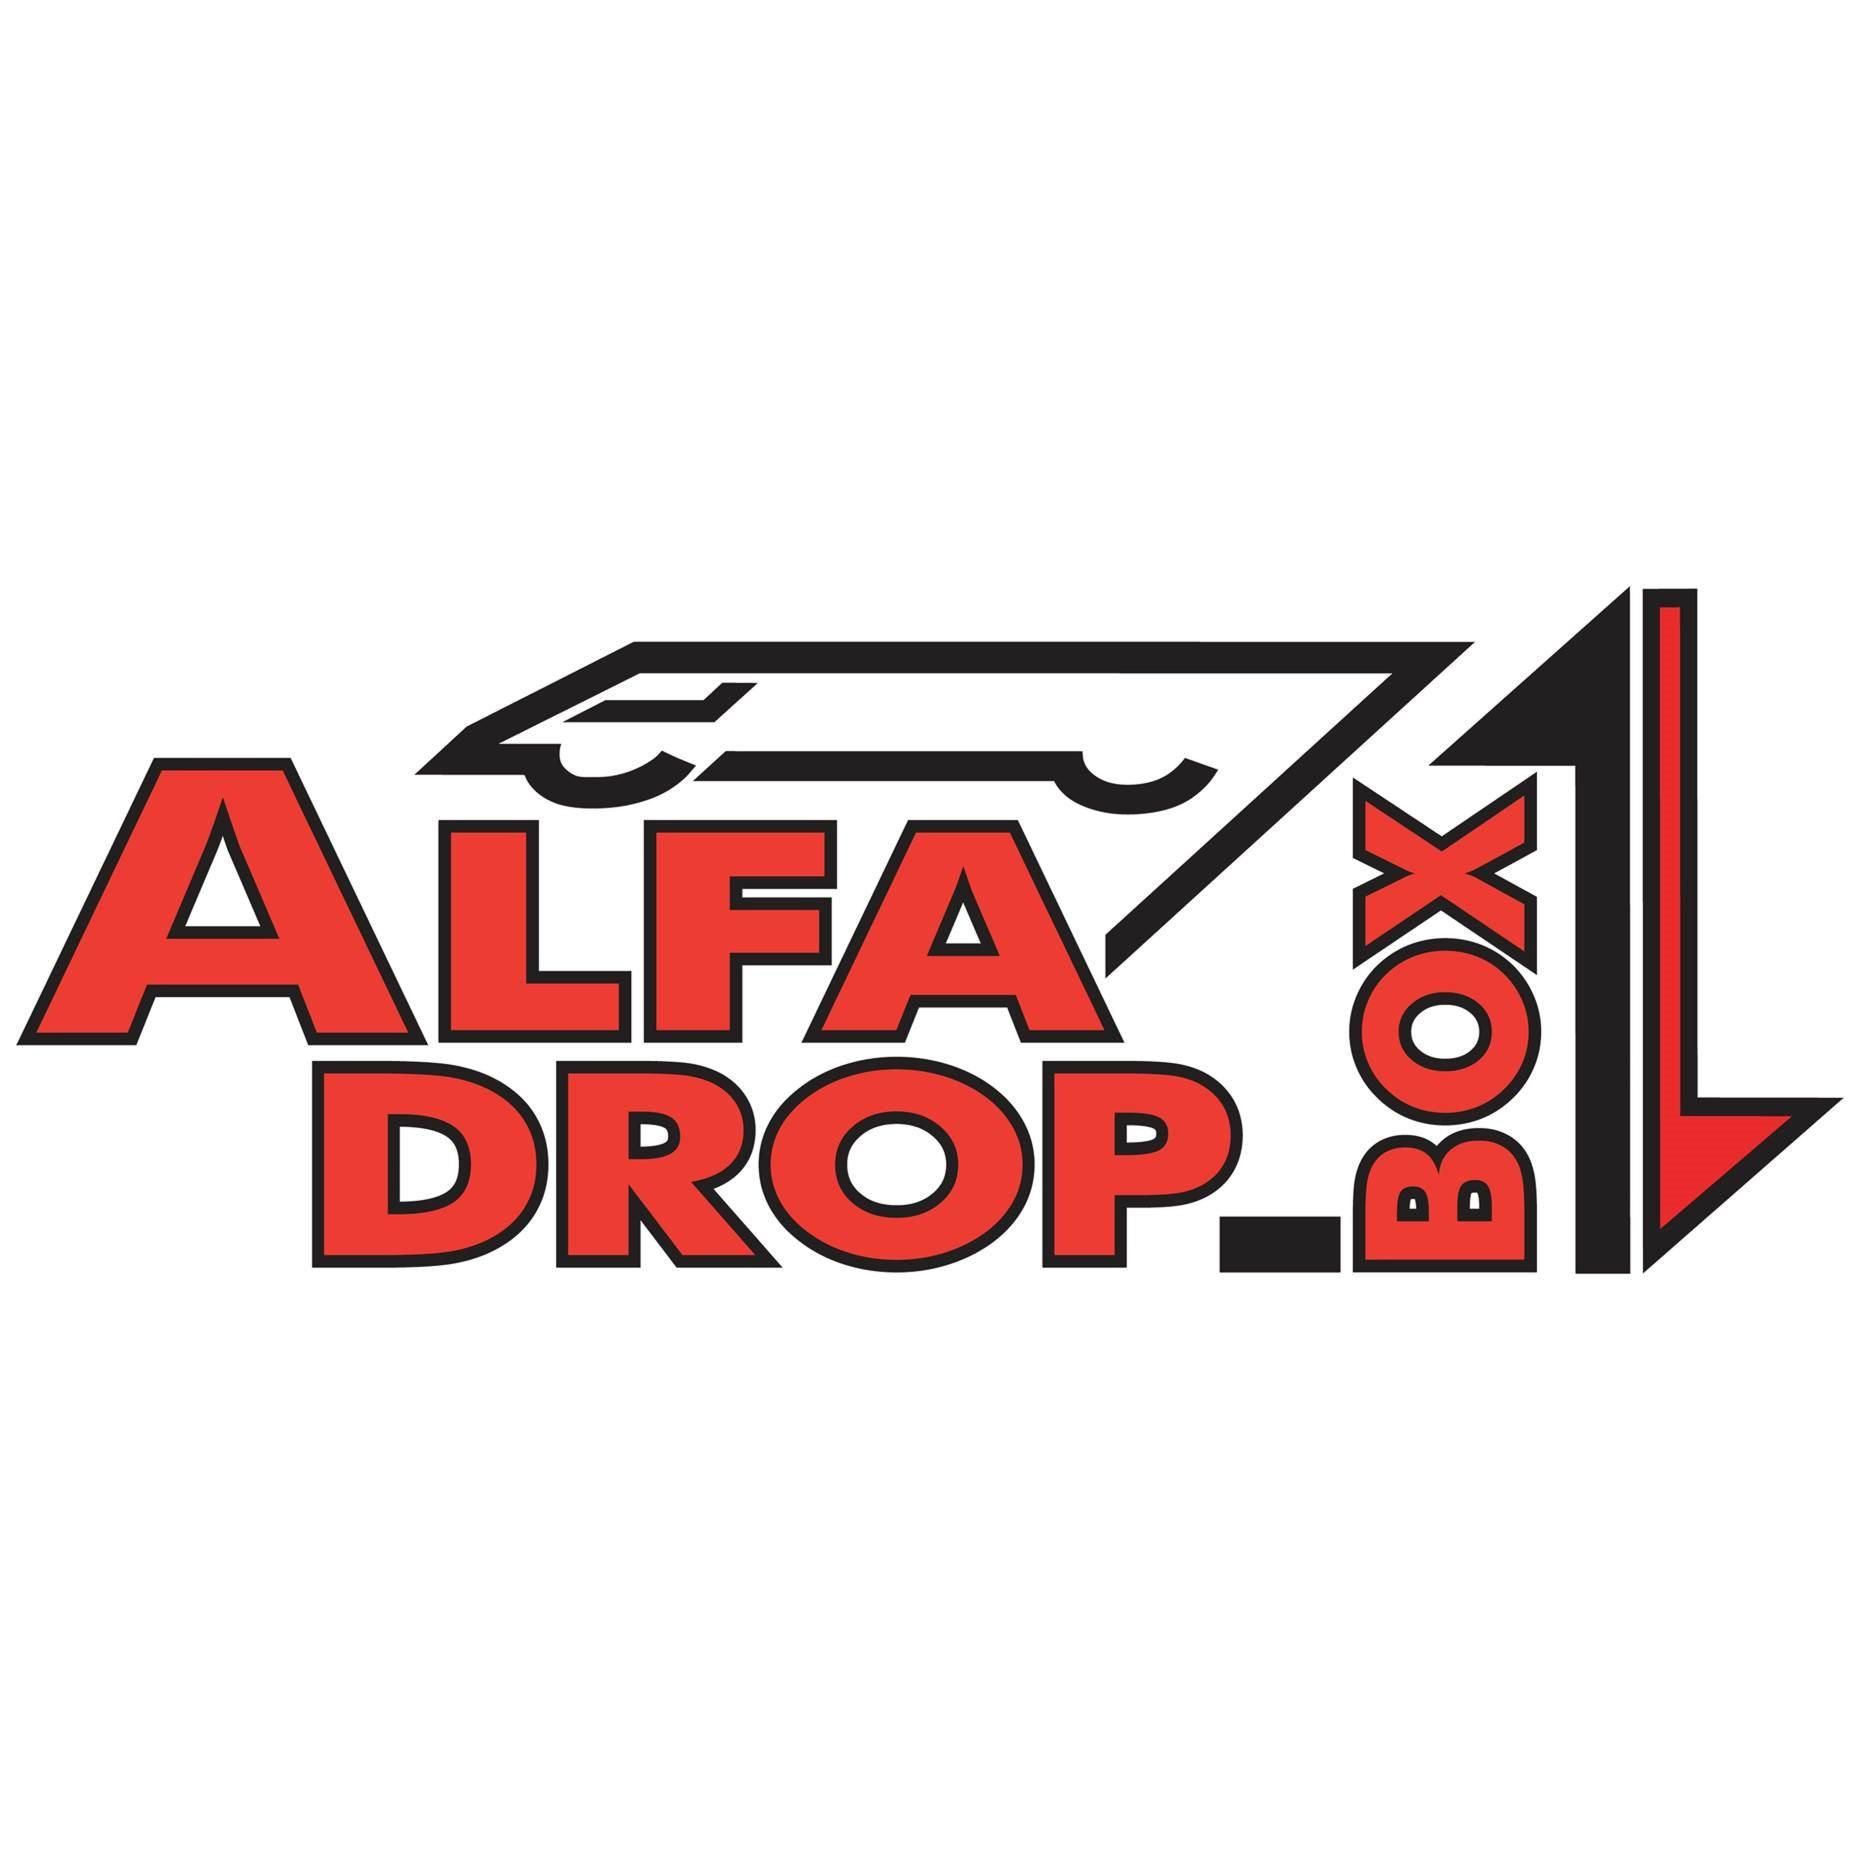 Alfa Drop Box Ltd